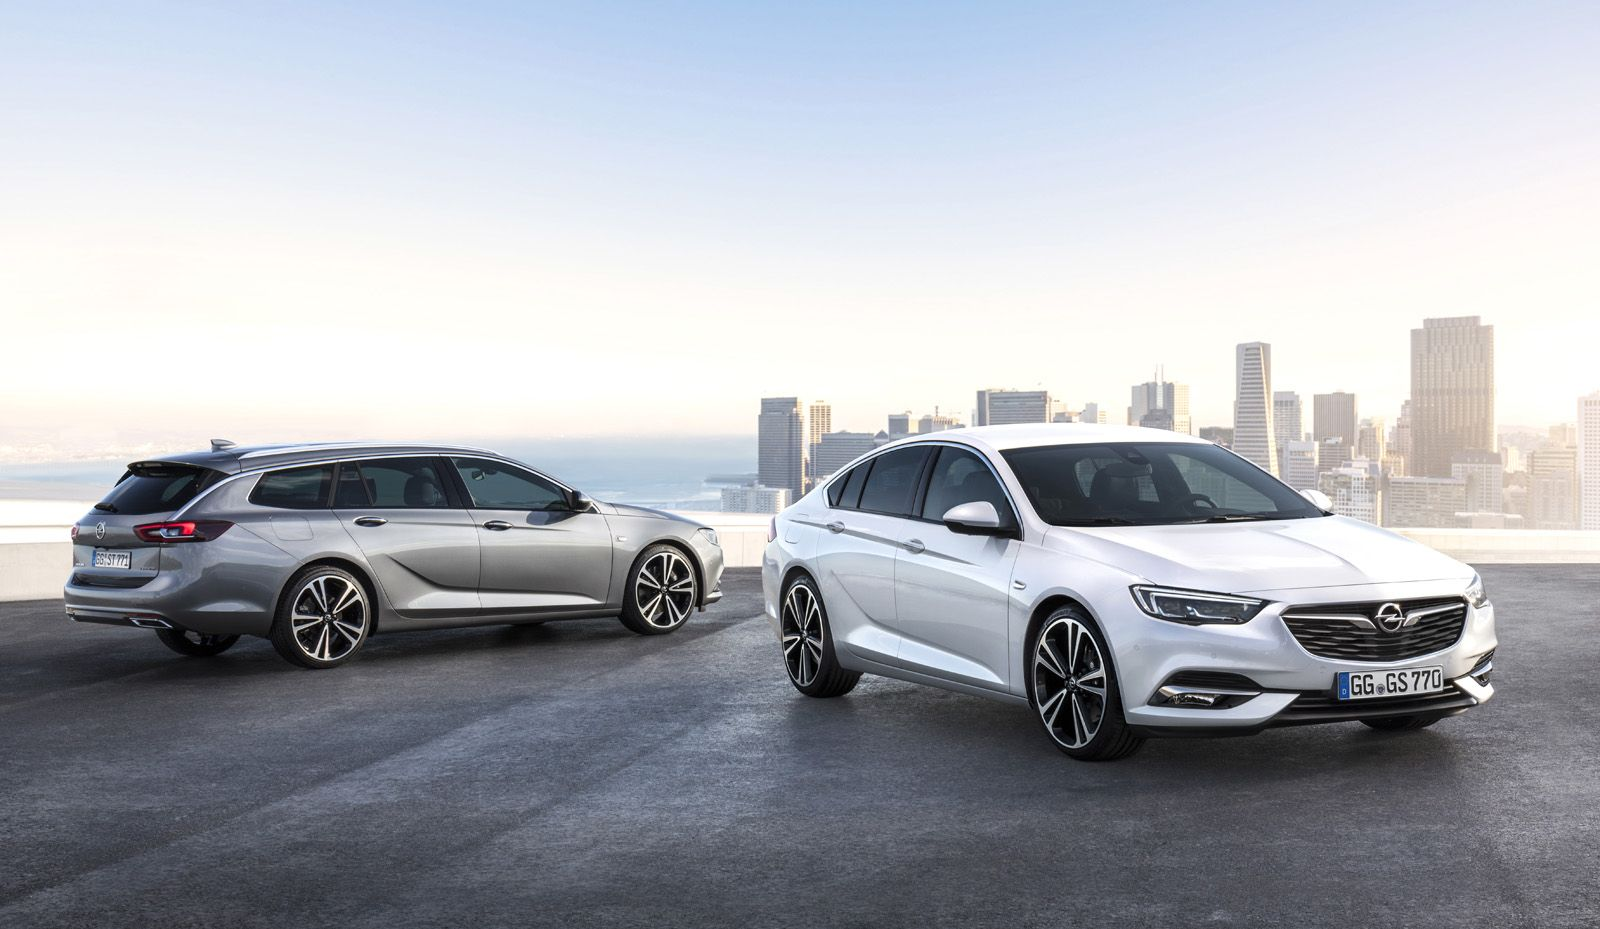 2018 opel insignia grand sport priced from 26 940 cars i like pinterest grands priced and sports